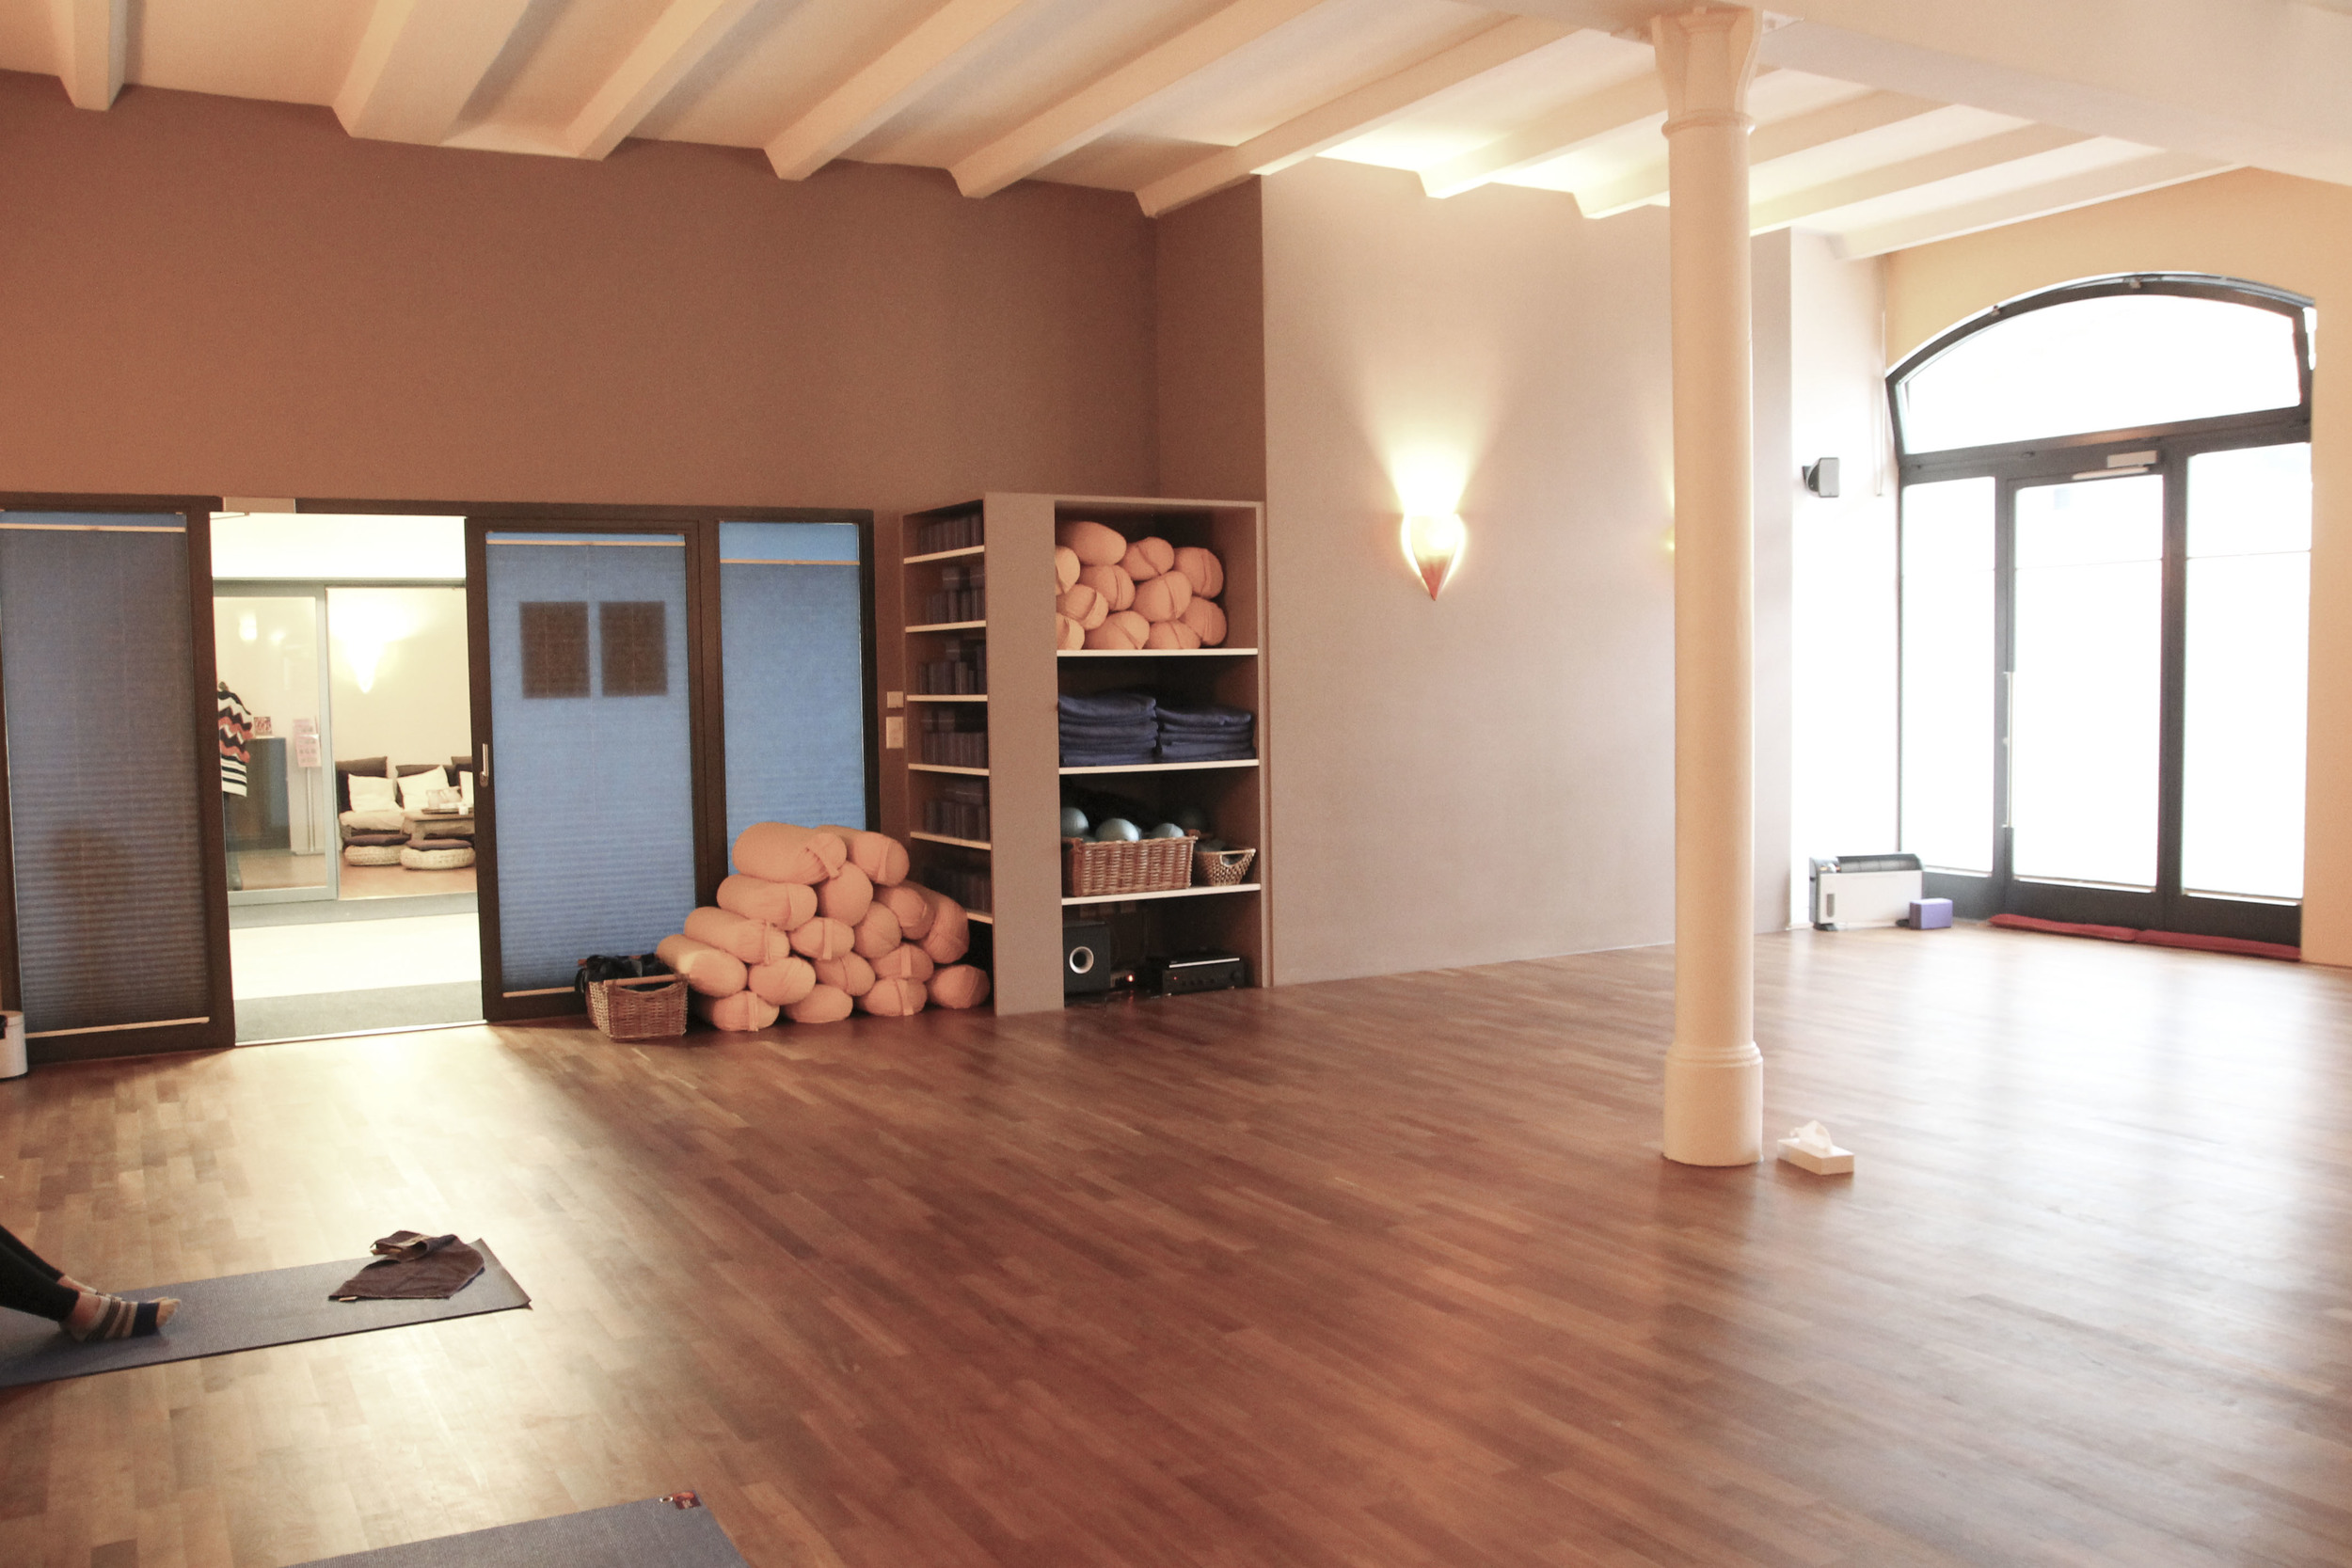 Planet Yoga Zürich Yoga Studio152.jpg